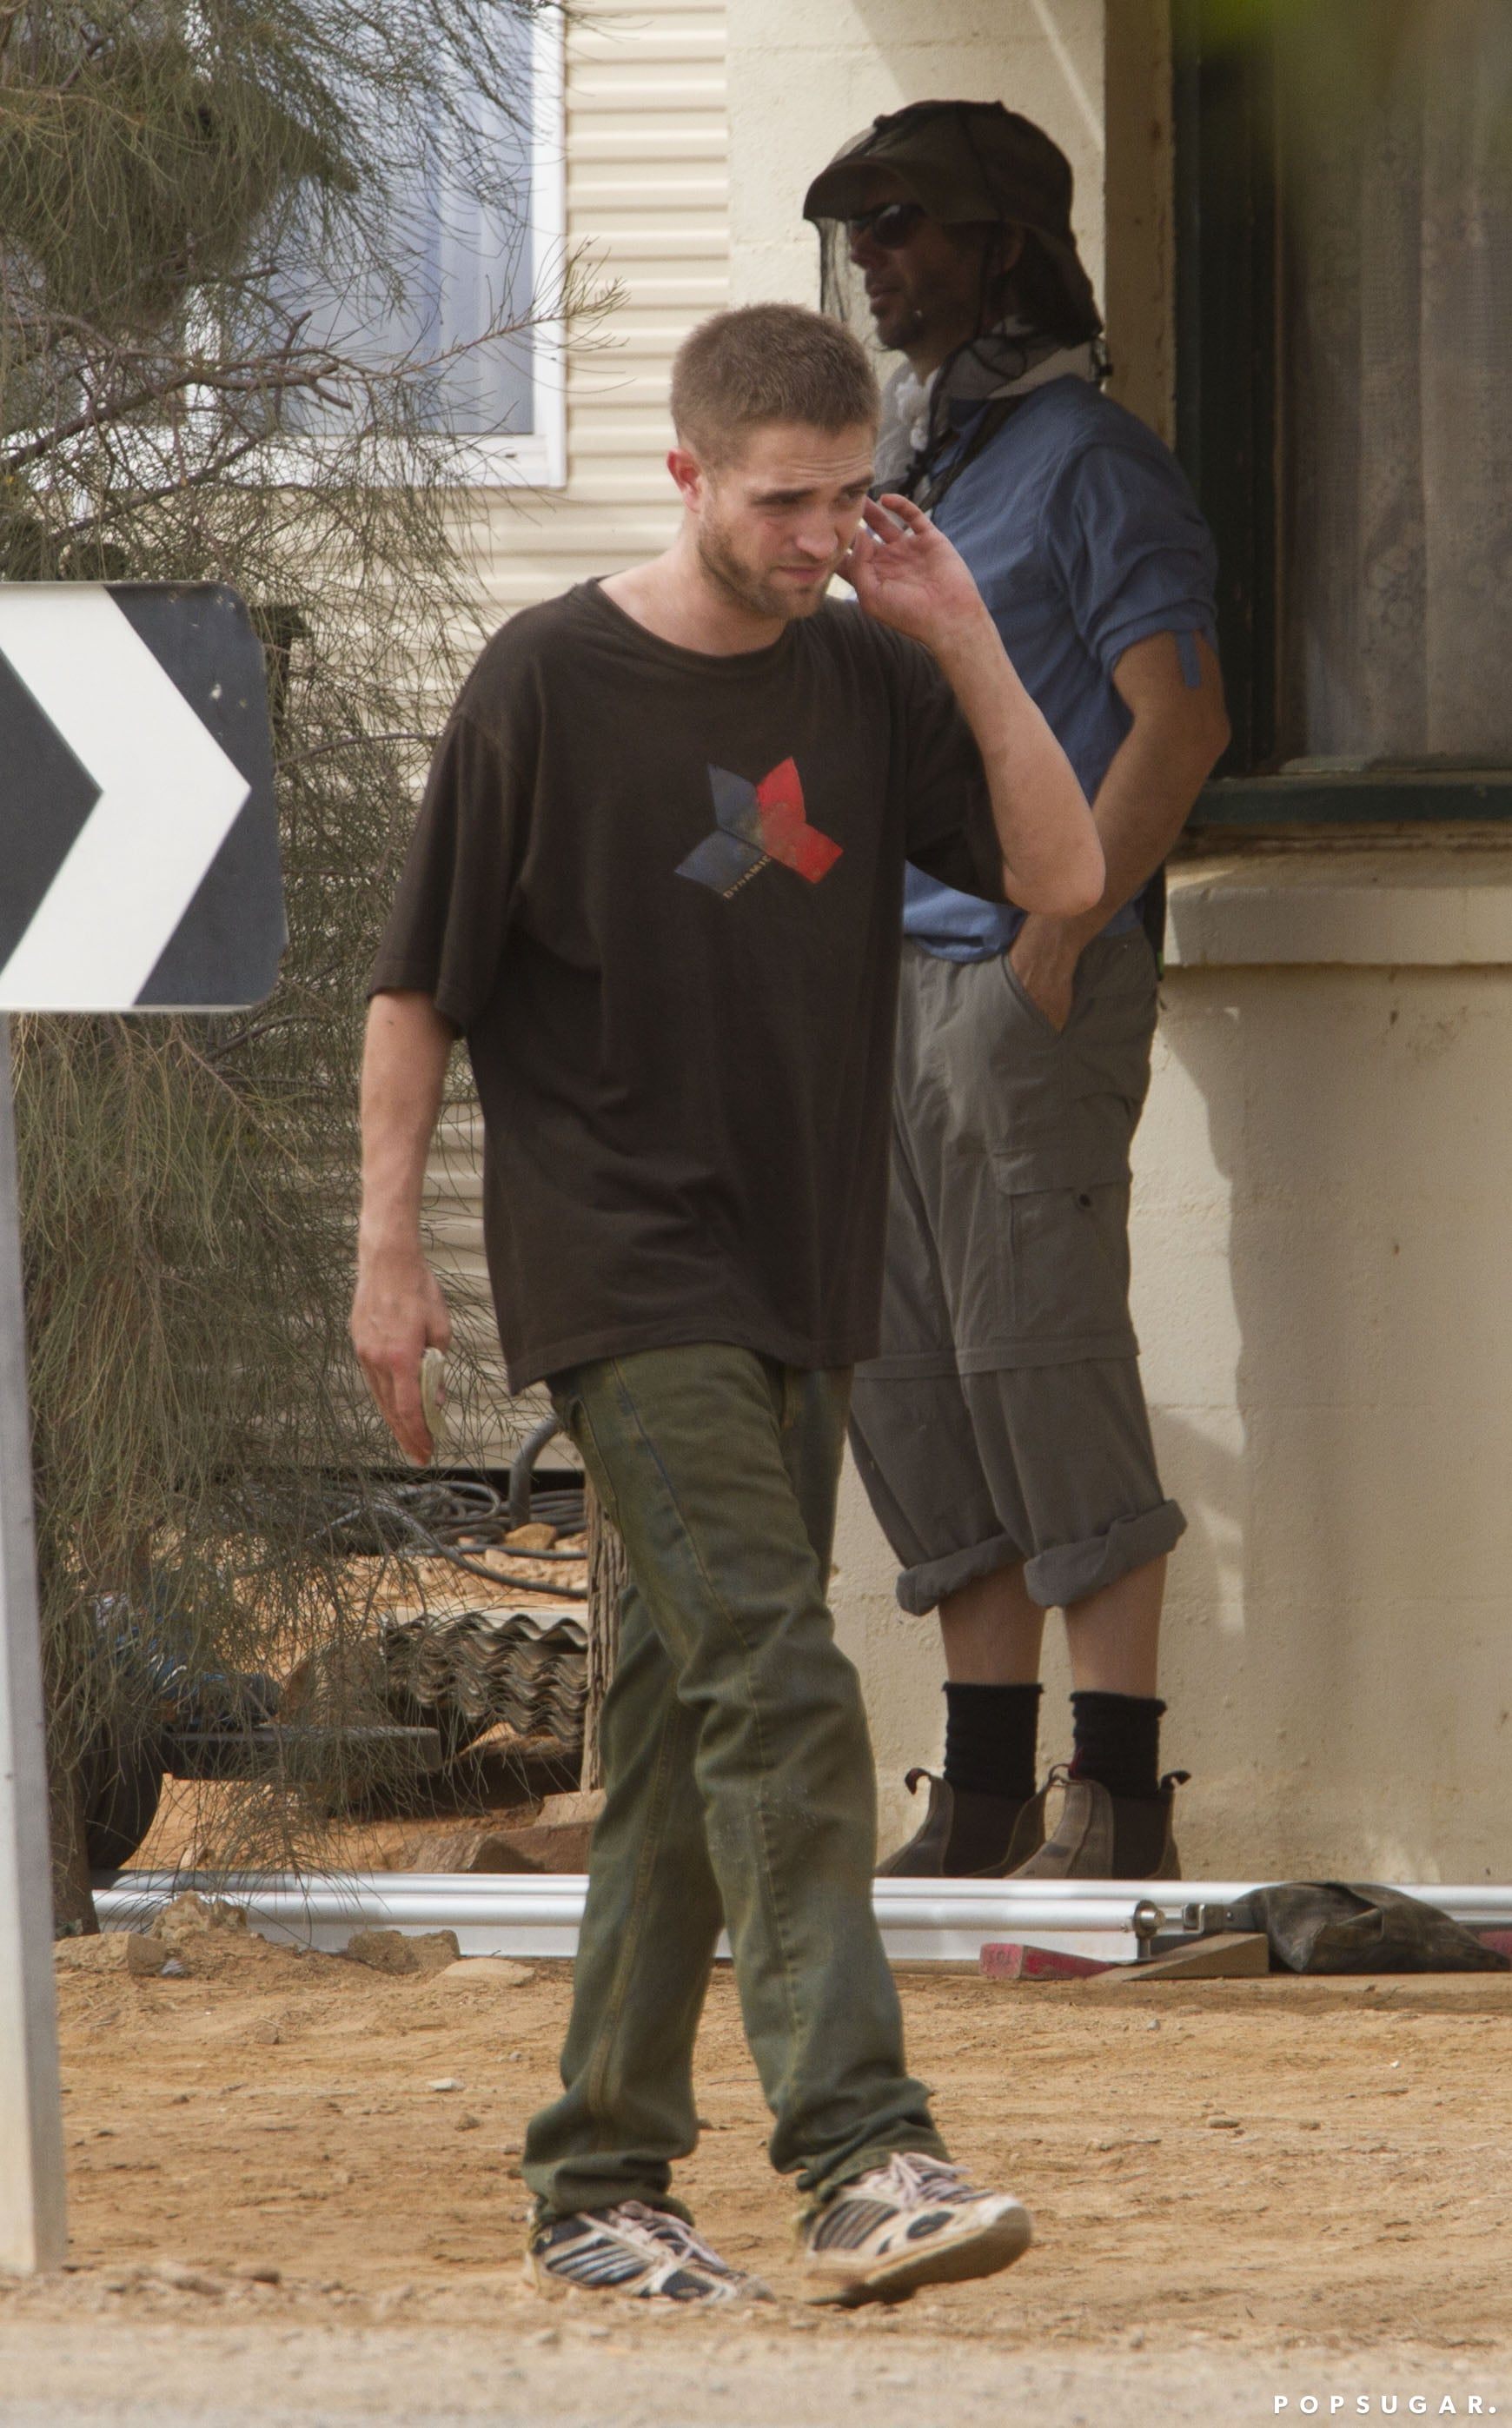 Robert Pattinson showed off a grunge makeover on the set of The Rover in Australia.   Source: MediaMode